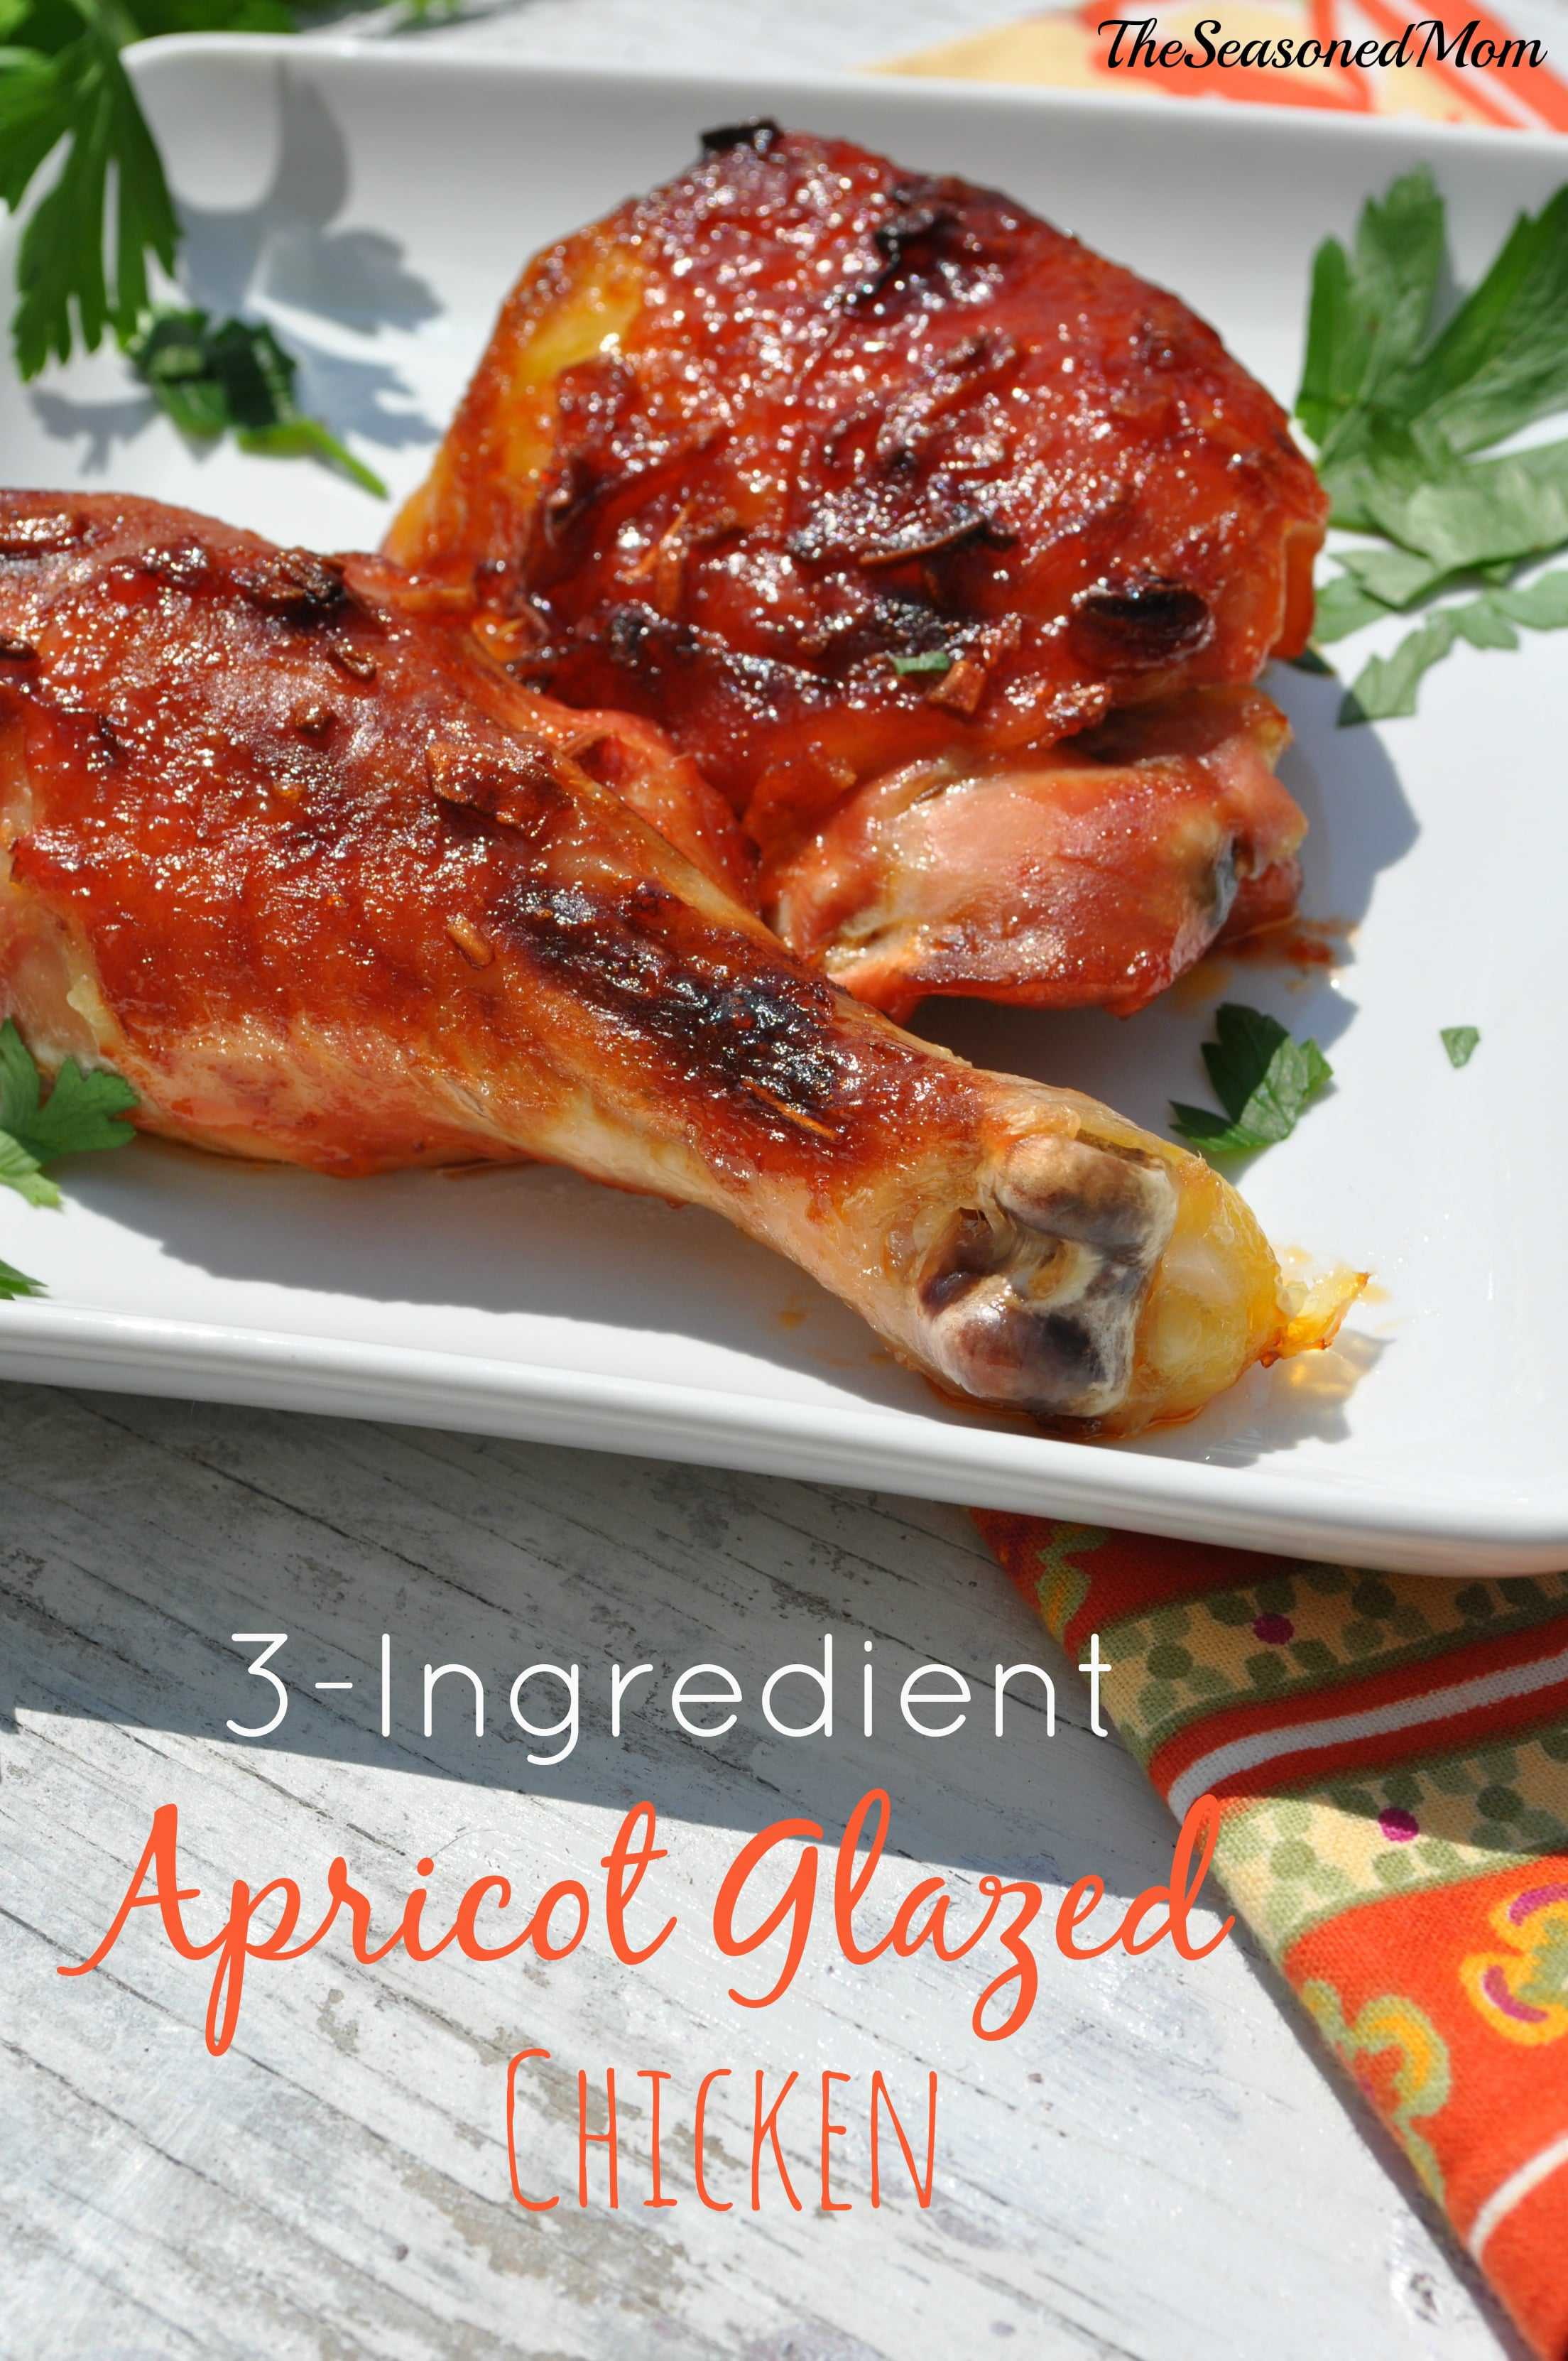 ... and juicy 3-Ingredient Apricot Glazed Chicken for your busiest days